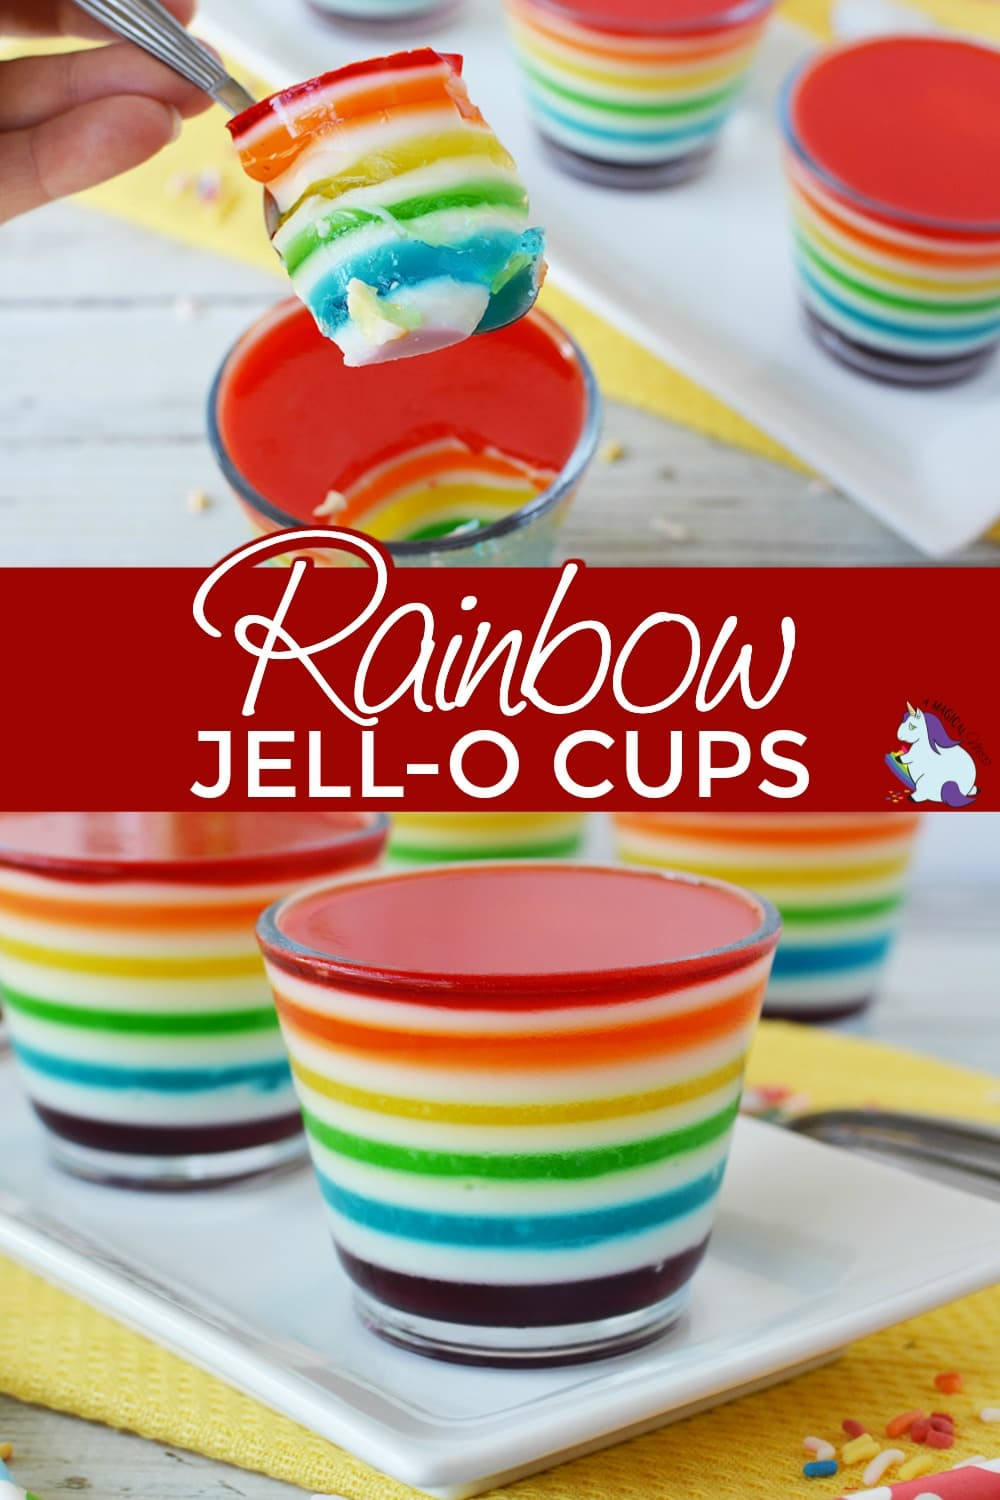 Jell-o layered into cups in a rainbow